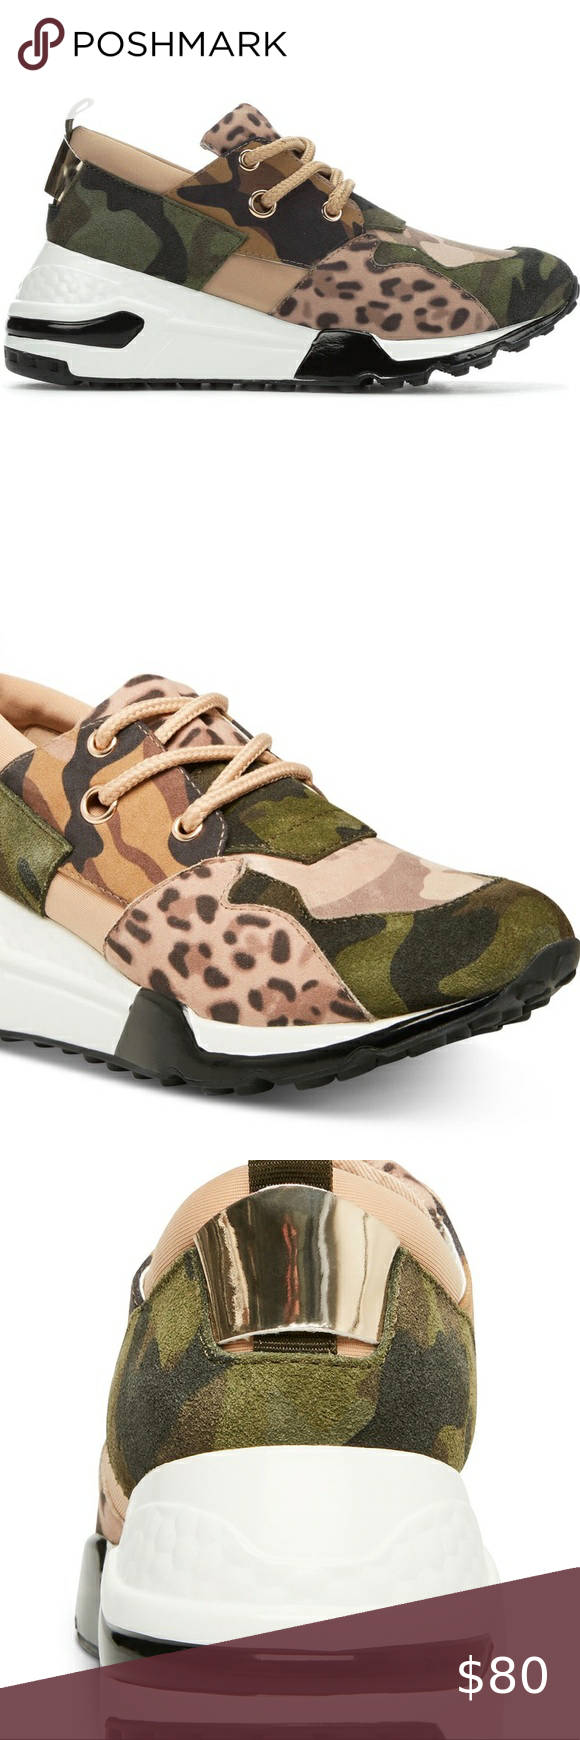 Steve Madden Camo Sneakers size 5 1/2